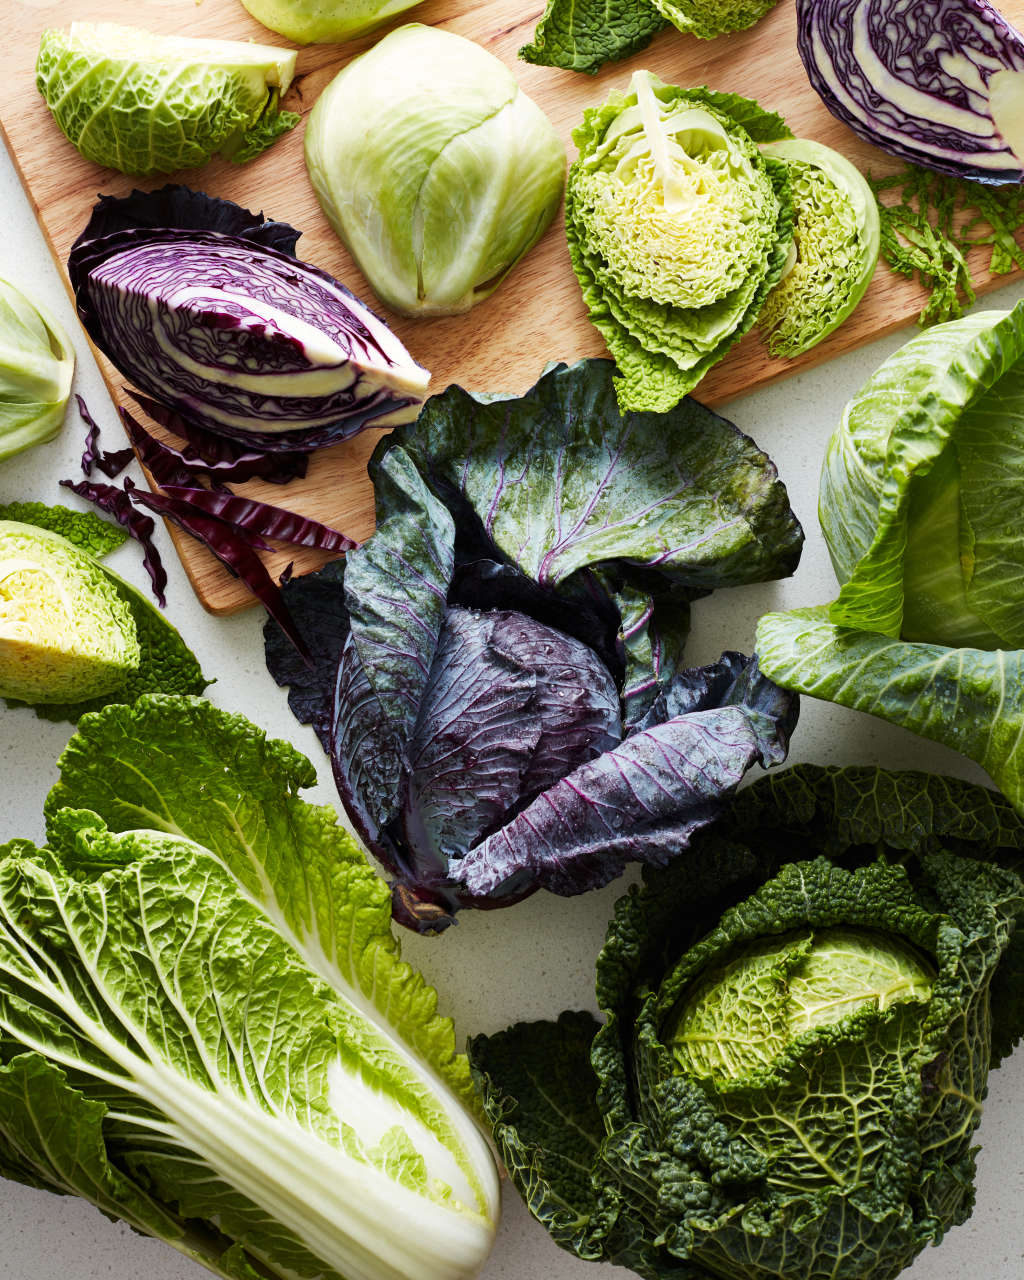 10 Small but Mighty Ways to Make Vegetables Better